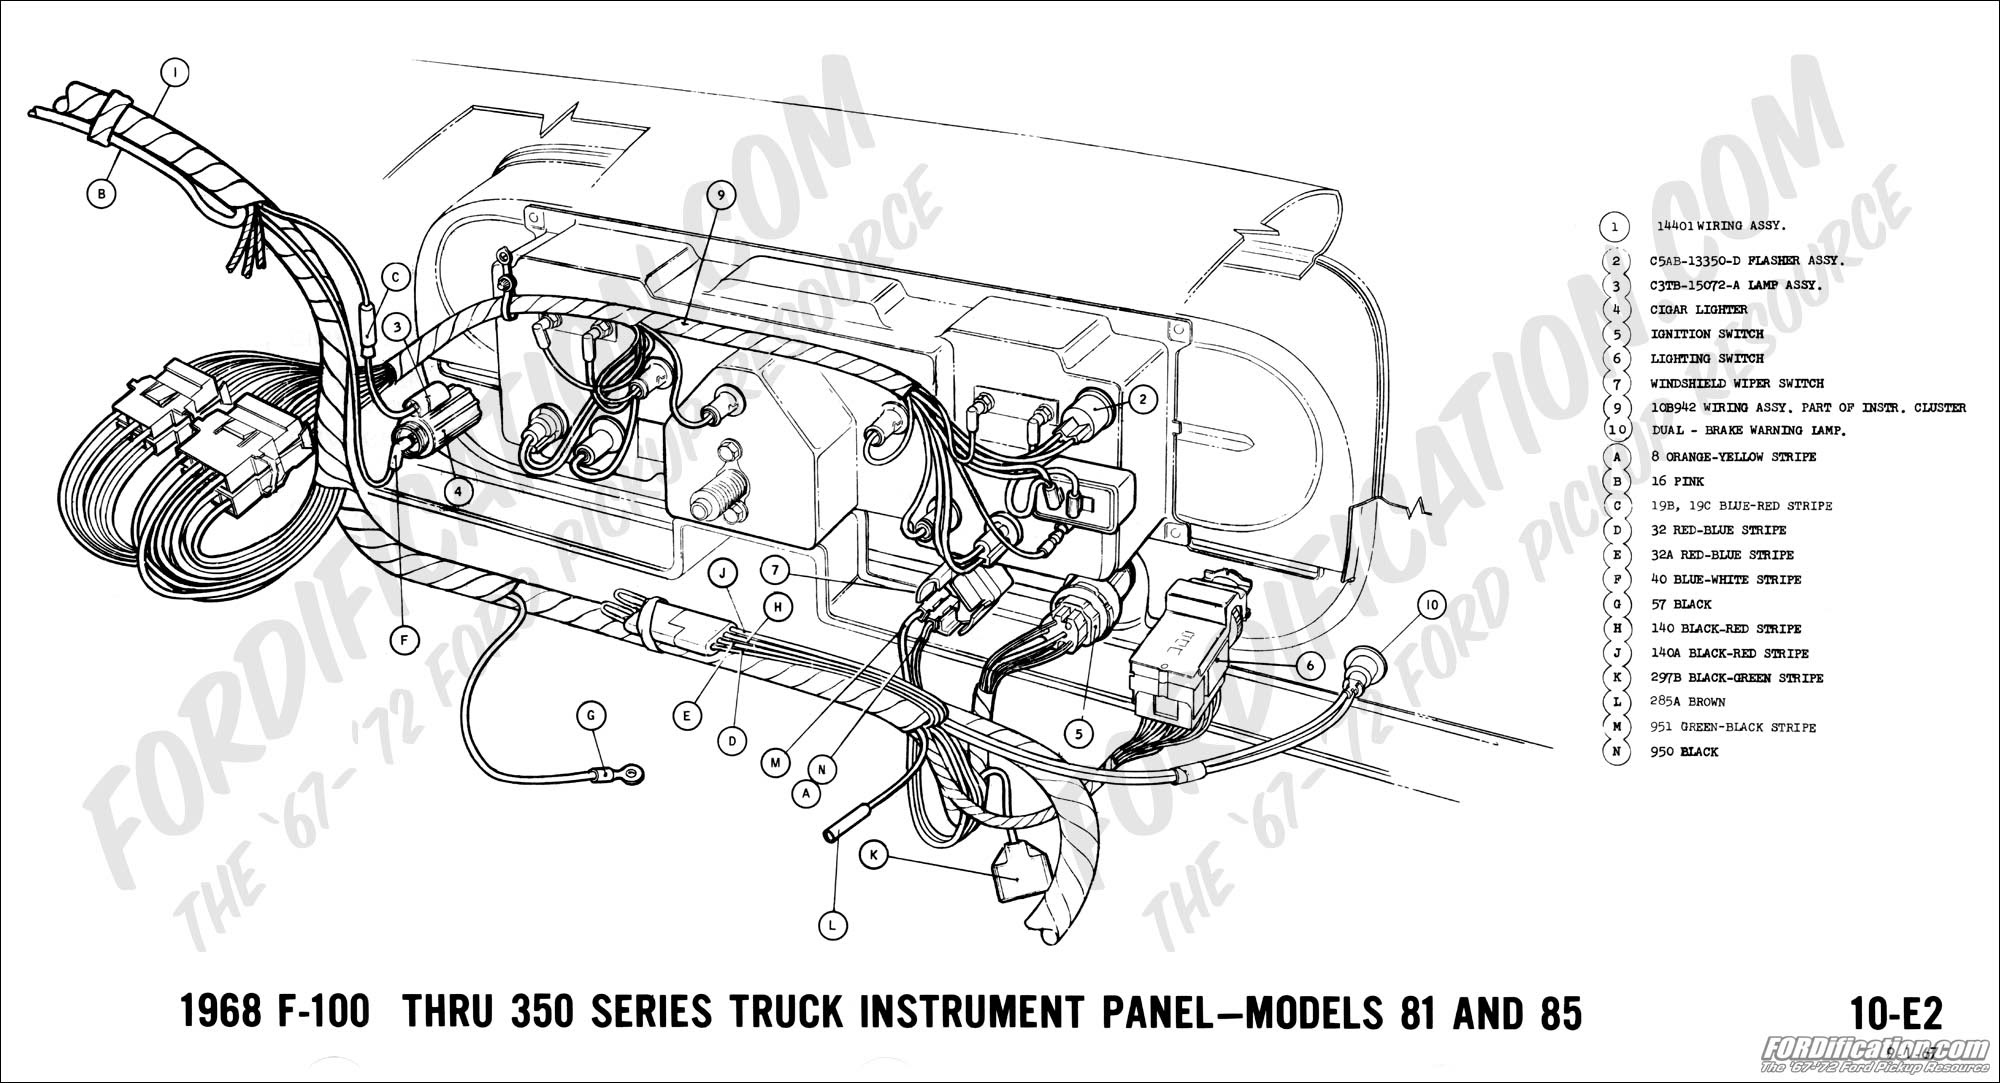 D907 1968 Corvette Wiper Motor Wiring Diagram Schematic Wiring Library